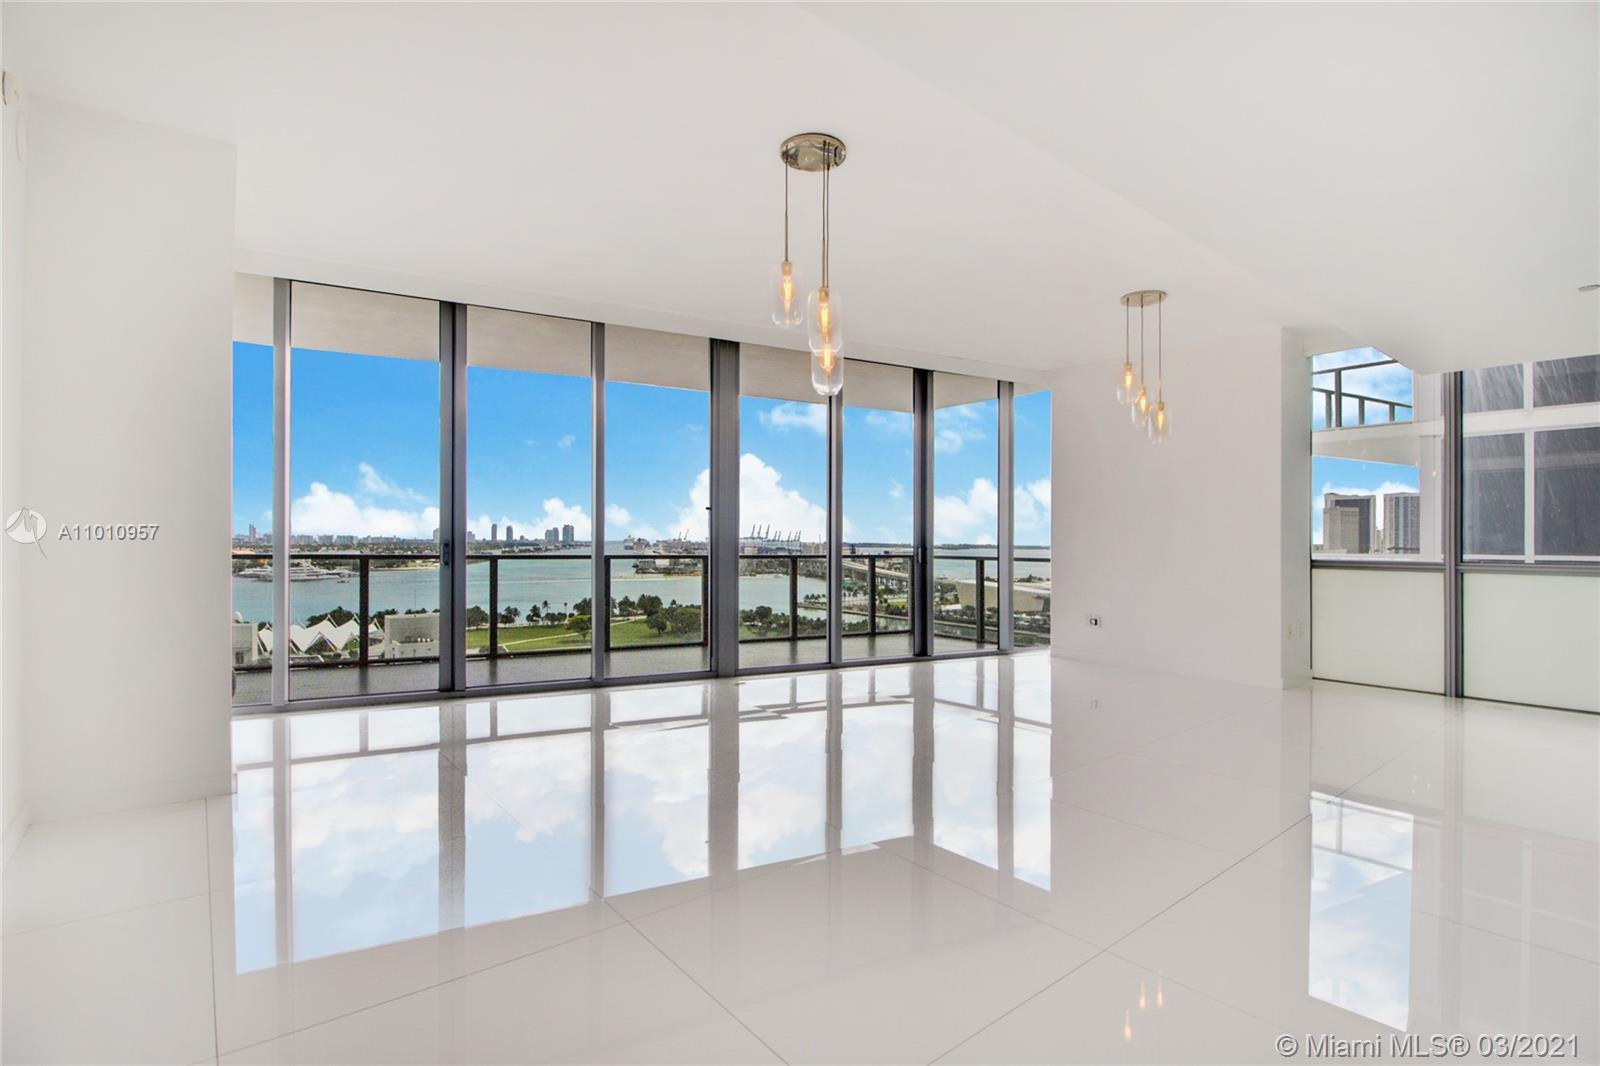 Stunning views of Biscayne Bay and Downtown Miami from this large 3 bedroom / 3.5 bathroom unit. Loc